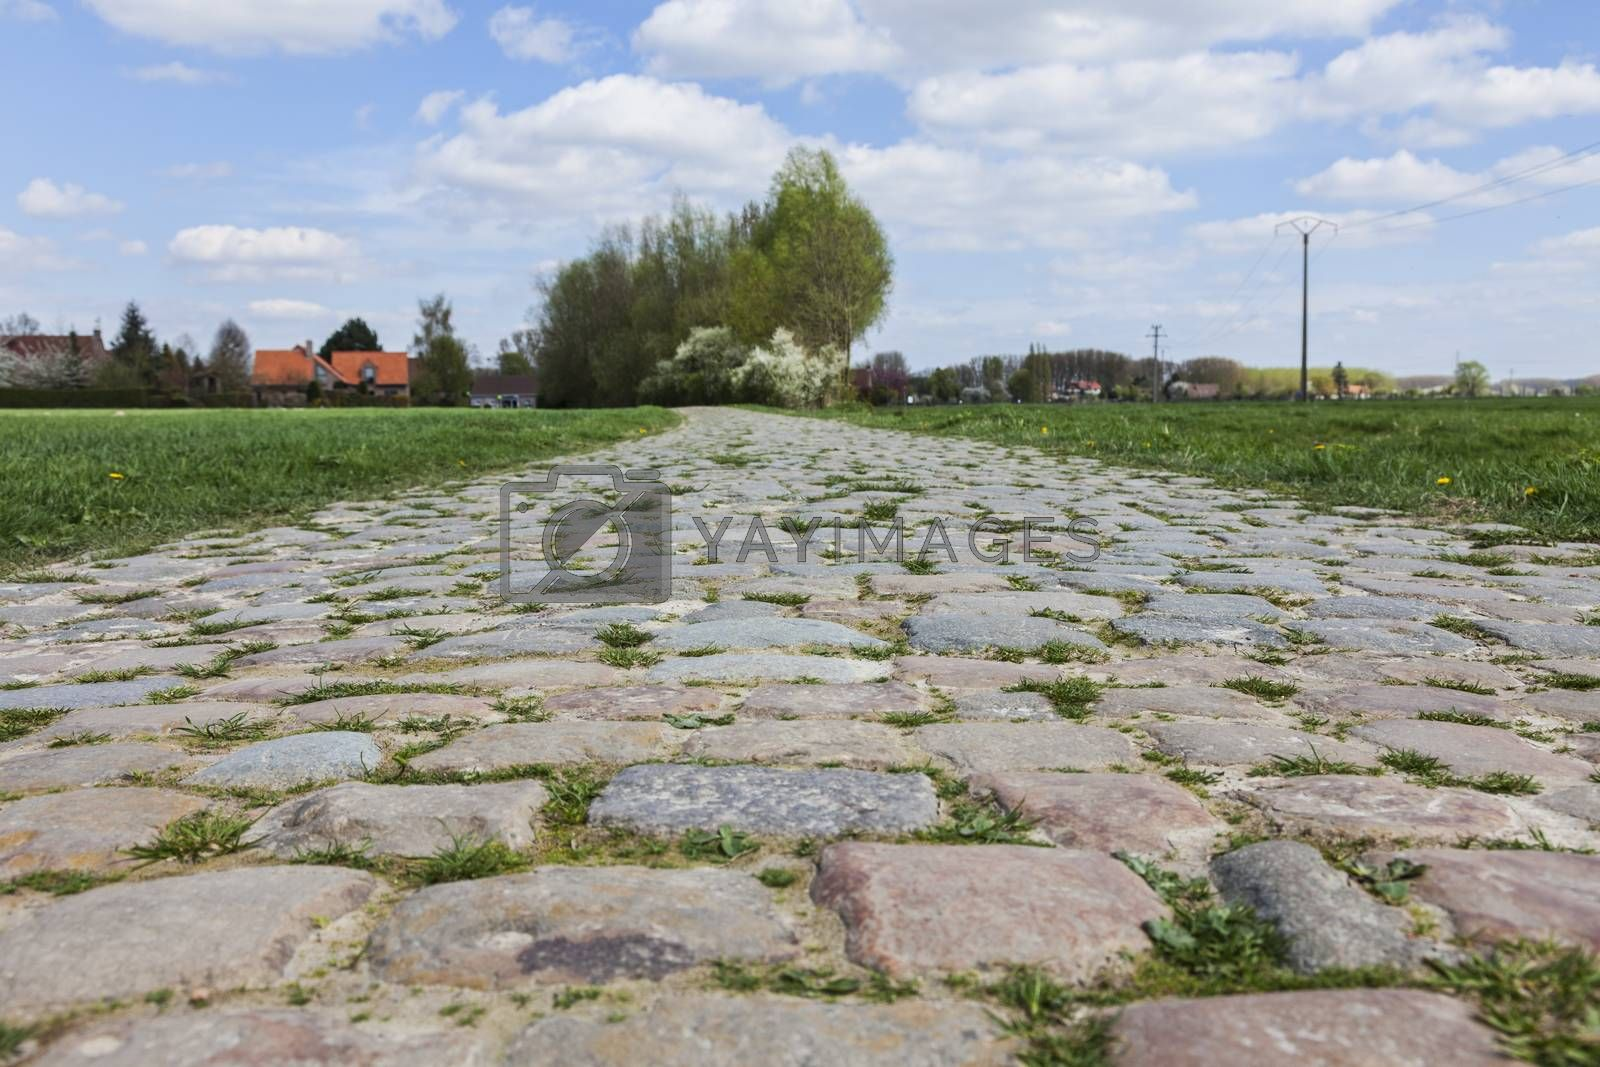 Cobbelstone road located in the North of France near Lille. On such roads every year is organized one of the most famous one day cycling race Paris-Roubaix.